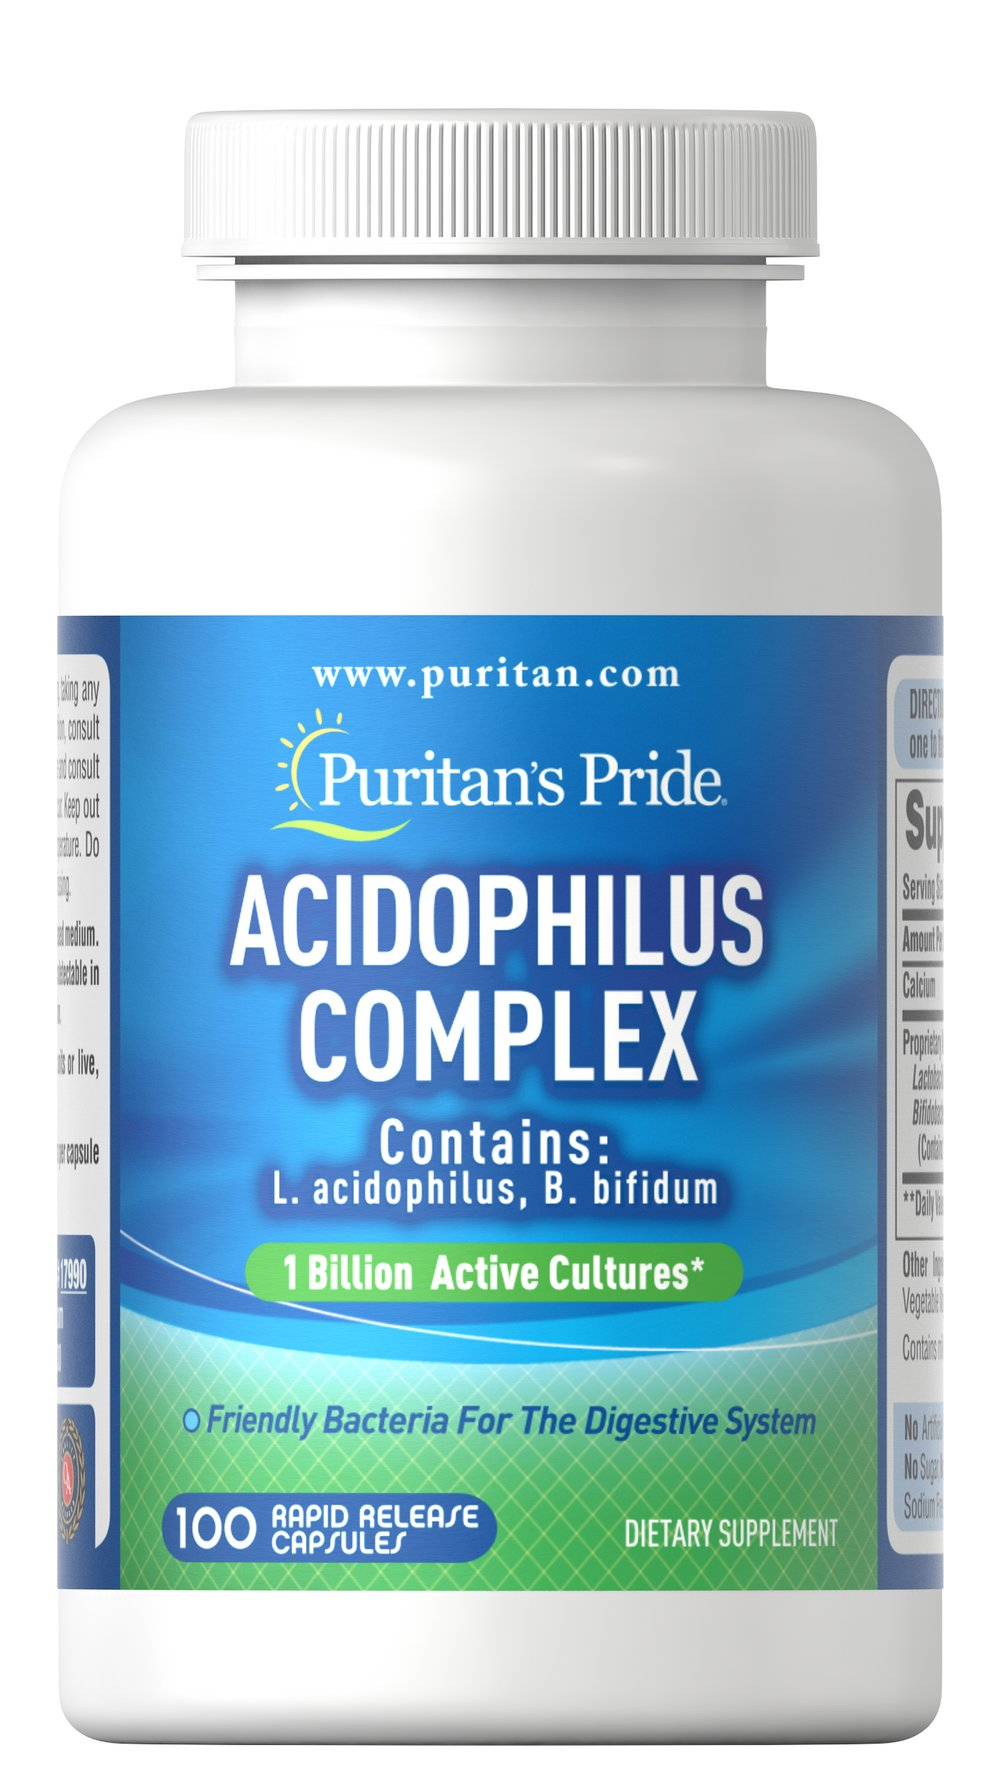 Probiotic Acidophilus Complex <p>Supports Digestive and Intestinal Health**</p><p>1 Billion active cultures per capsule at time of manufacture</p><p>Contains L. Acidophilus and B. lactis</p><p>Acidophilus supports the healthy functioning of the intestinal system by promoting a favorable environment for the absorption of nutrients.** Most digestion takes place in the intestines so it is important to maintain intestinal health.  **Our Acidophilus